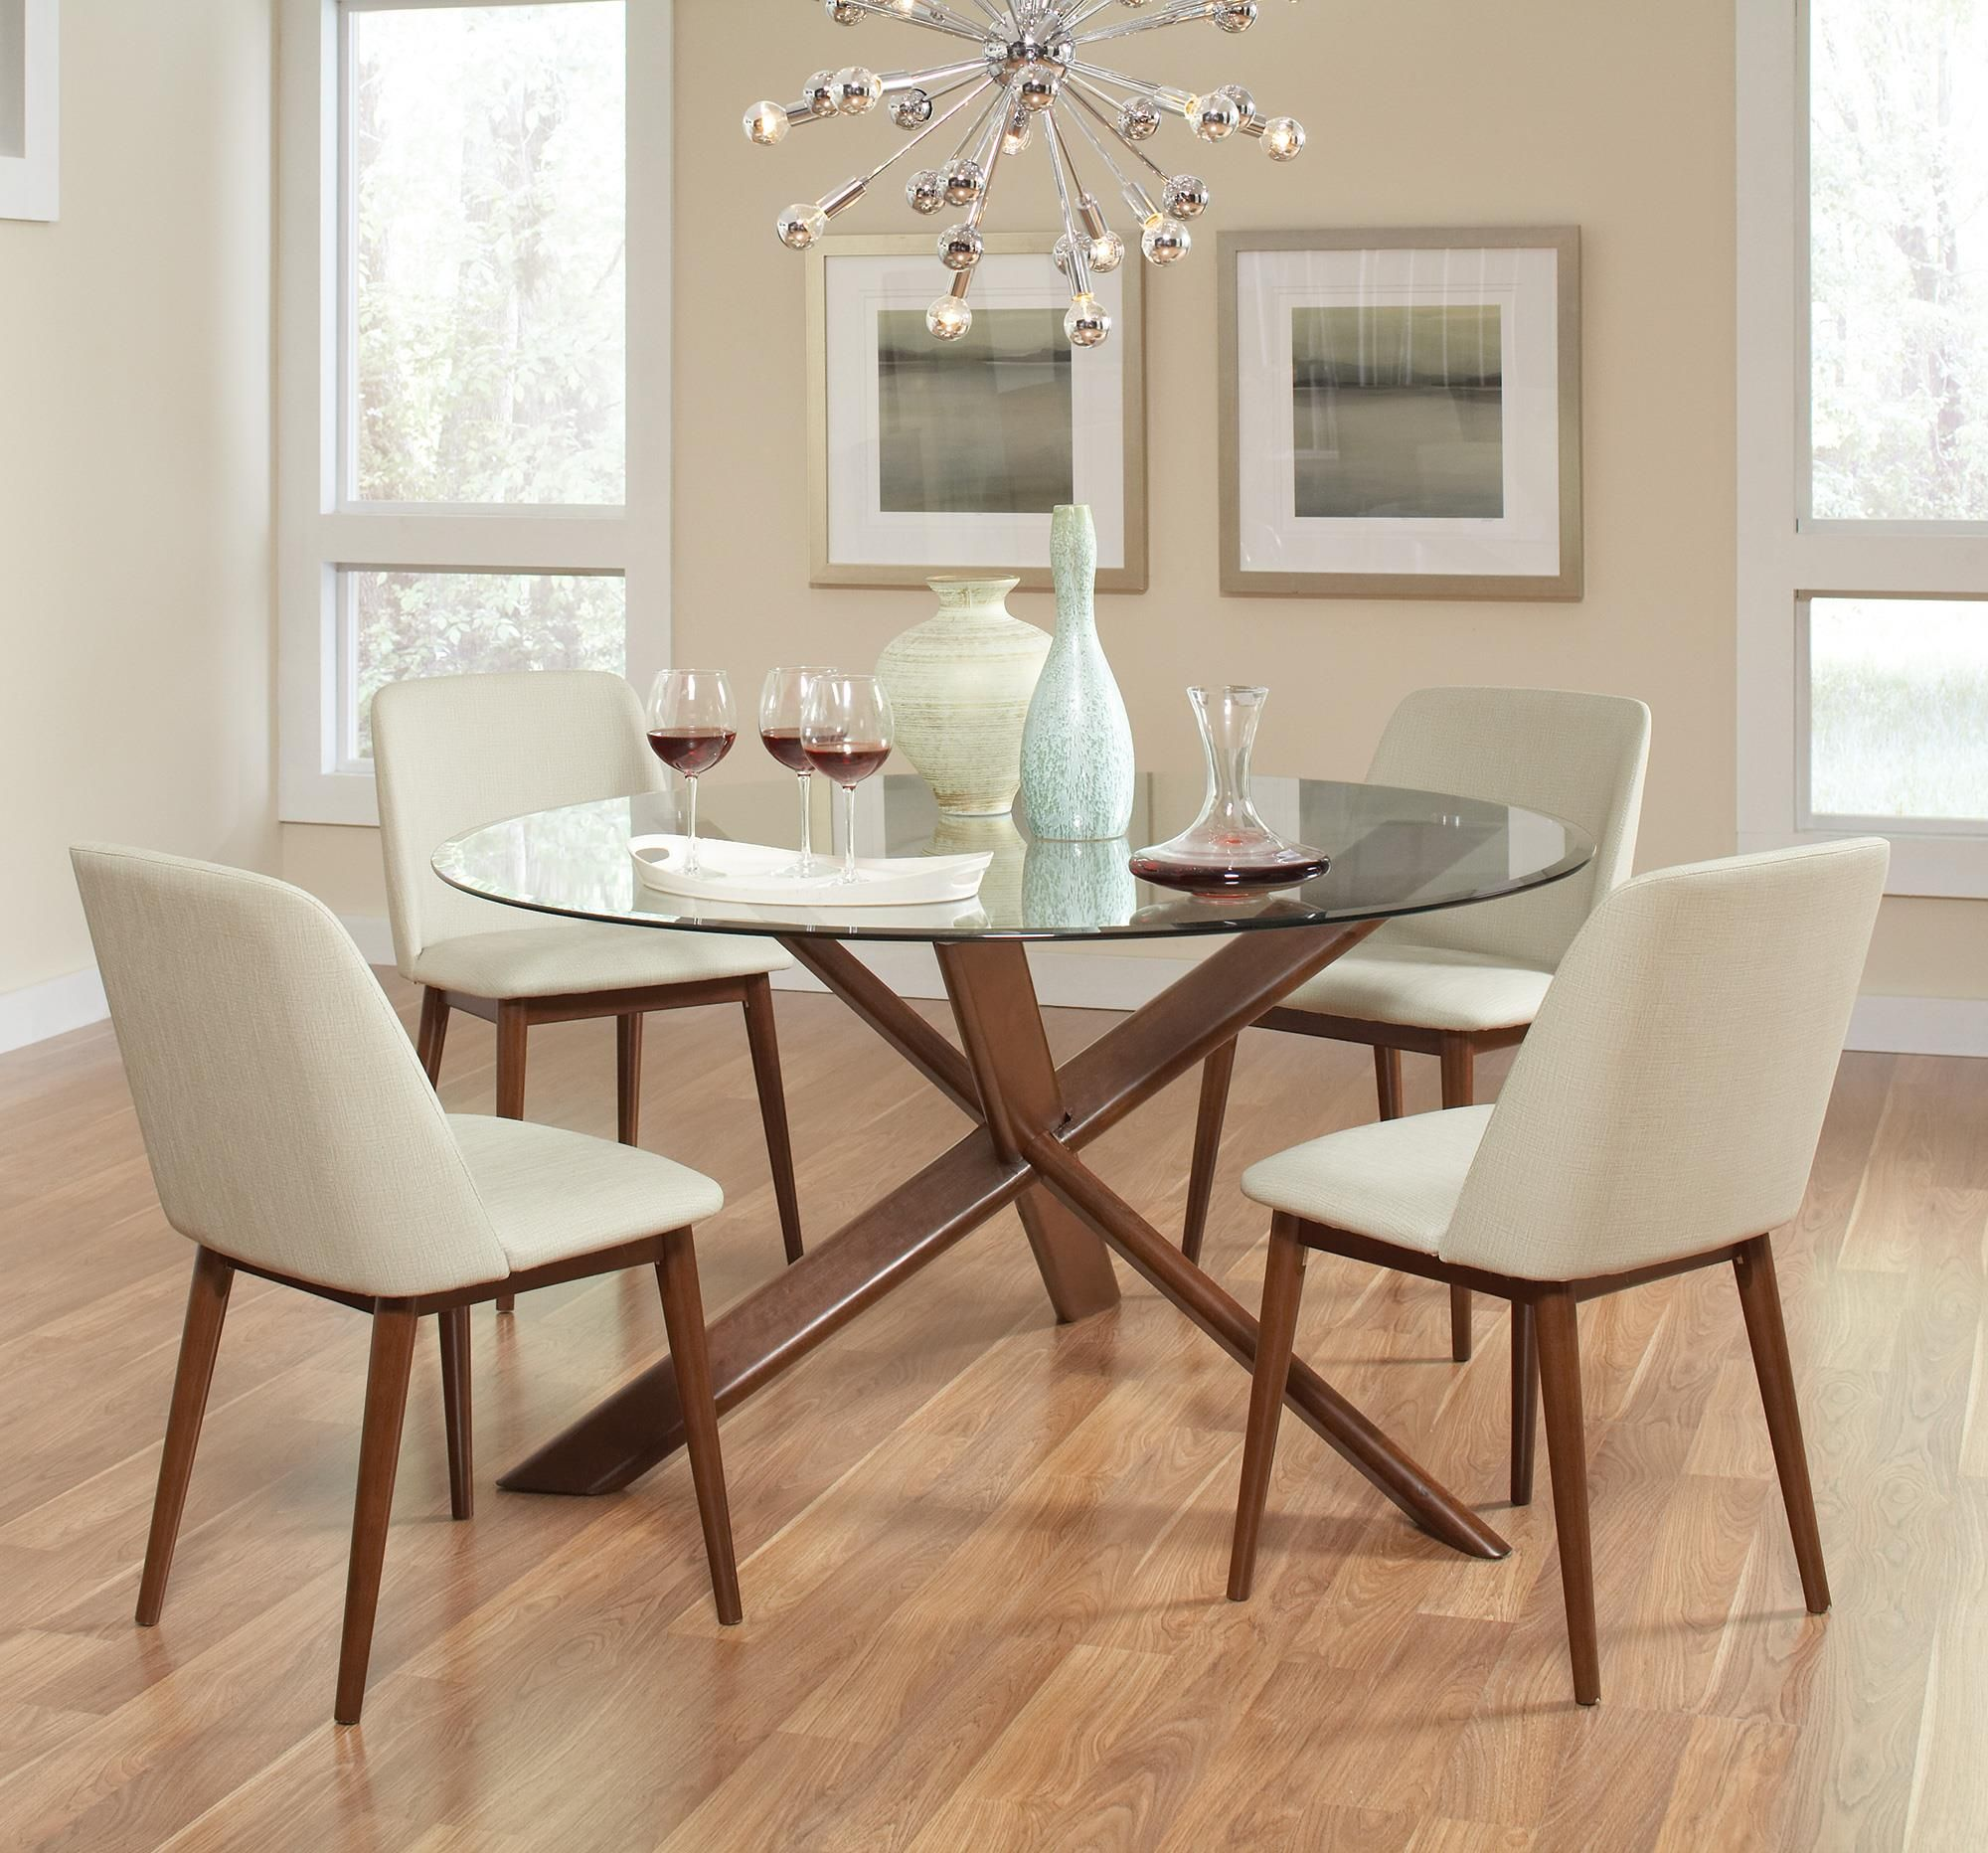 Barett Round Table with Glass Top with 4 Chairs Set by Coaster